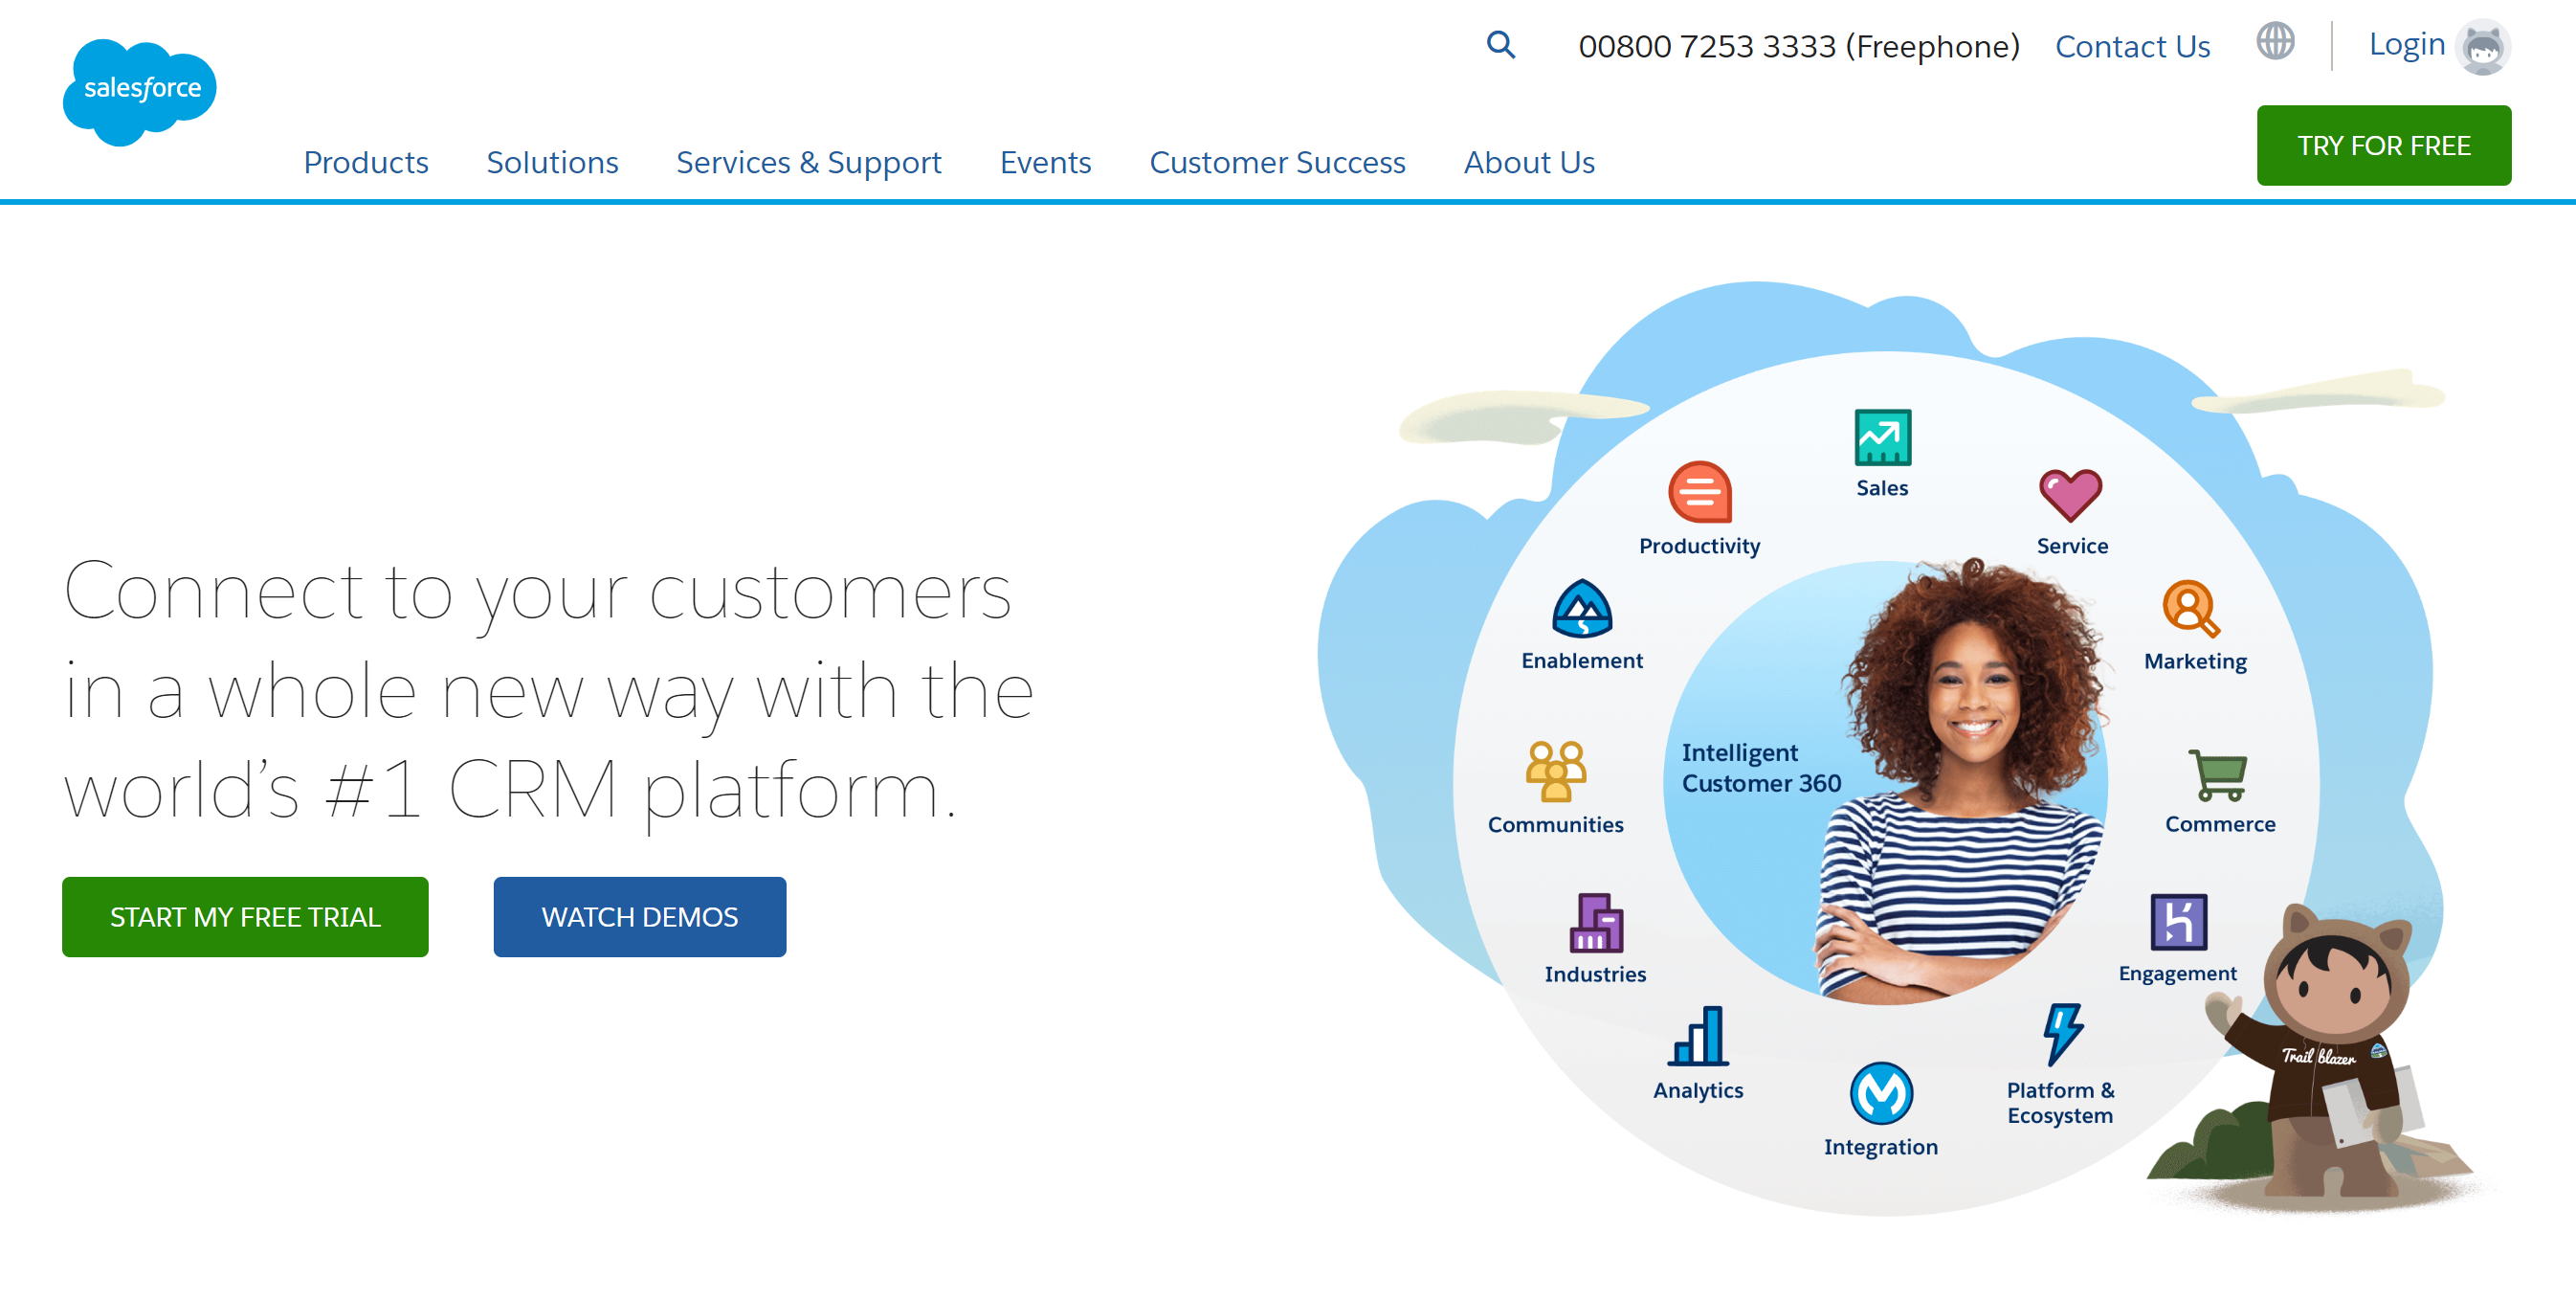 Salesforce_Homepage-1